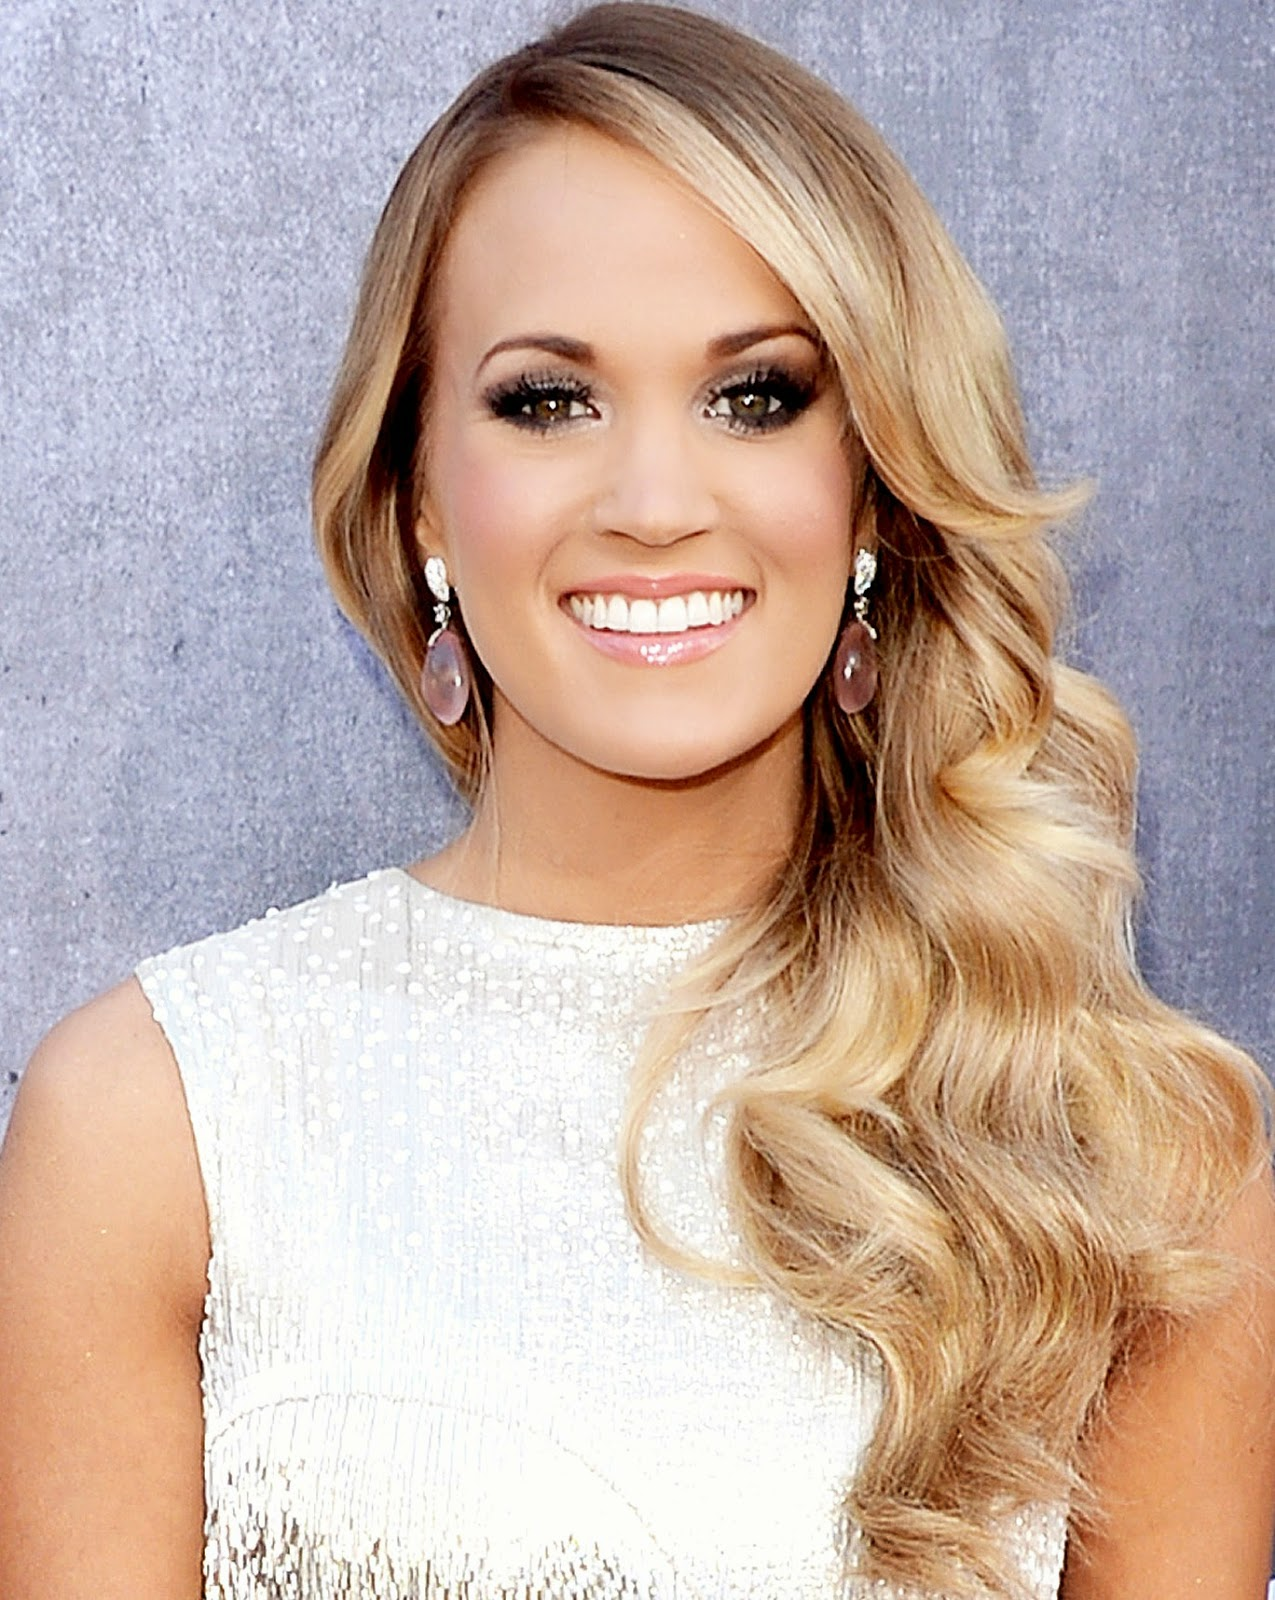 Meghan Markle Wikipedia >> The Latest Celebrity Picture: Carrie Underwood